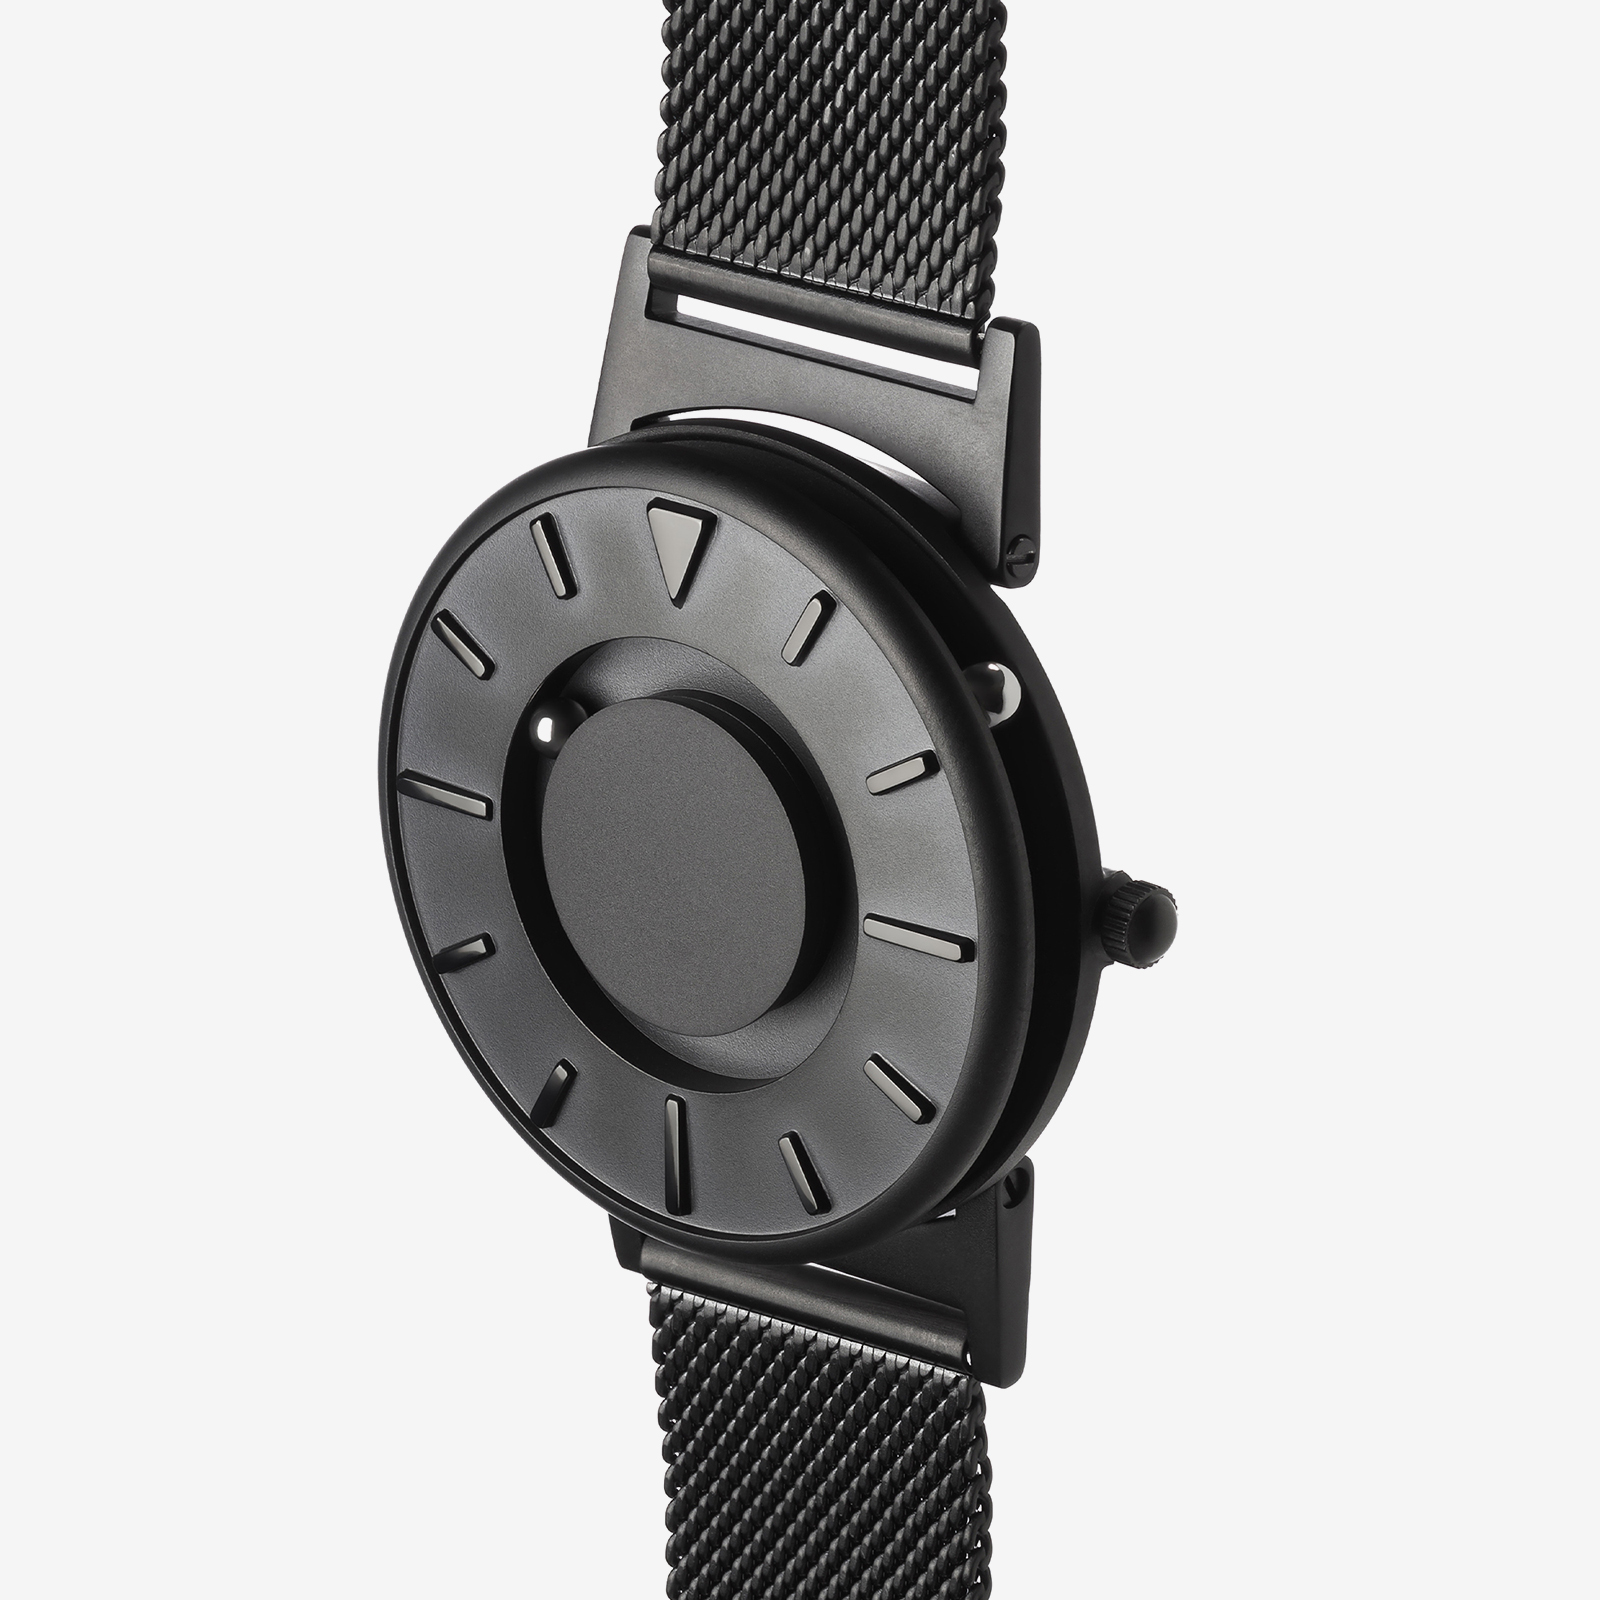 Black metal watch product photo